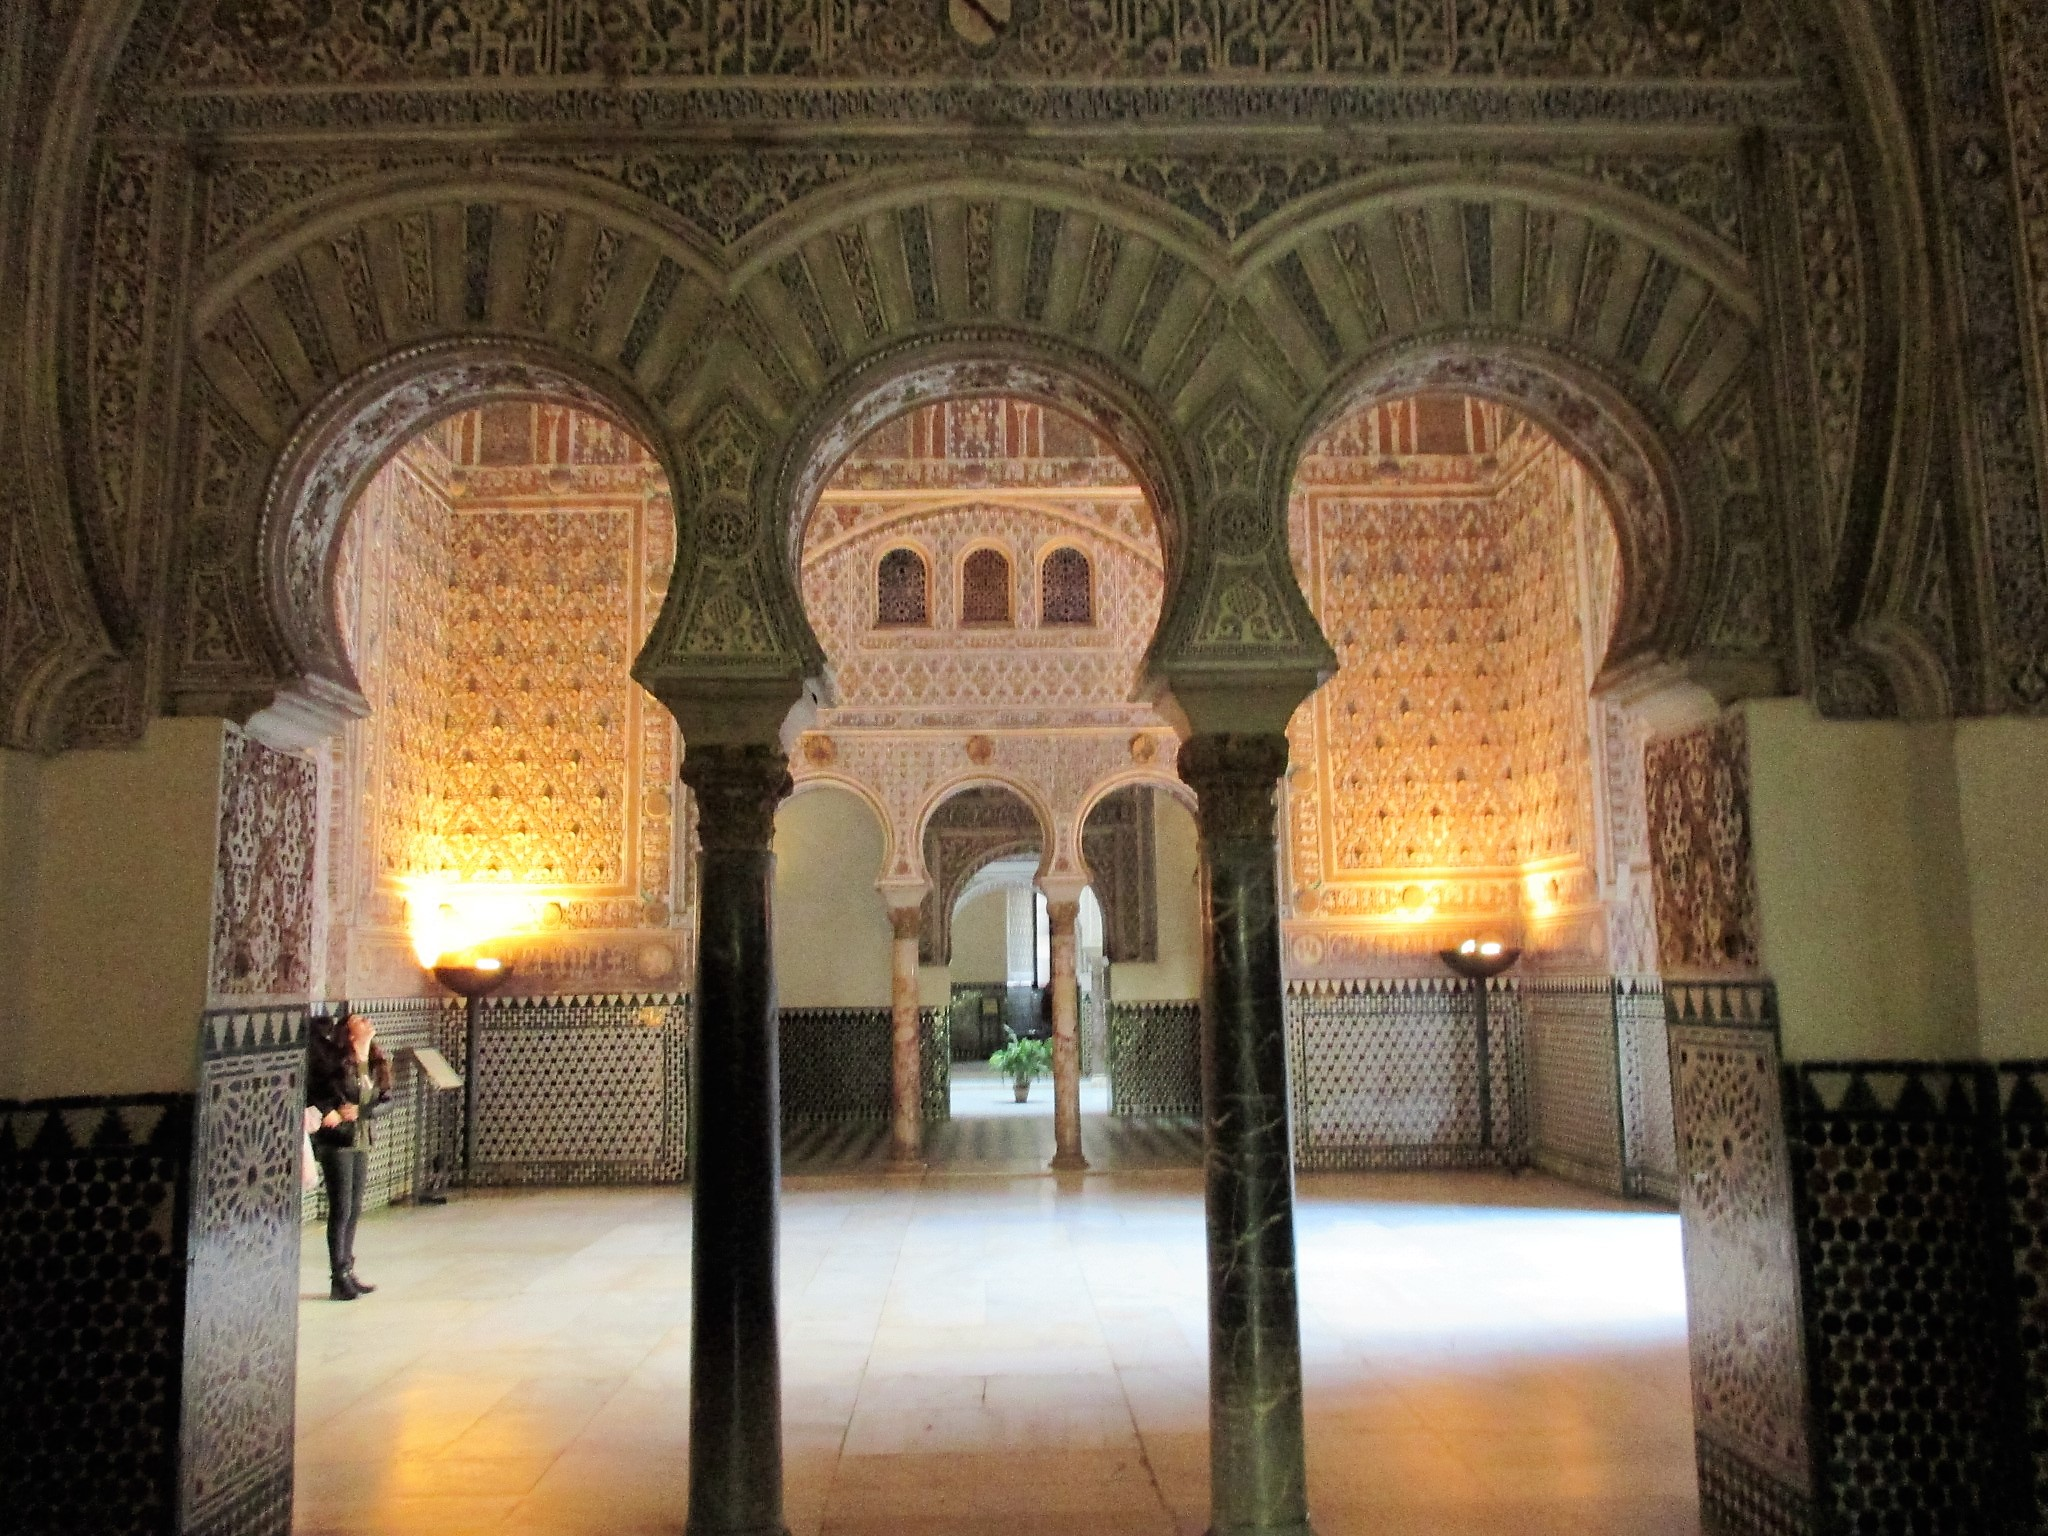 6 Inside the Alcazar Palace Seville